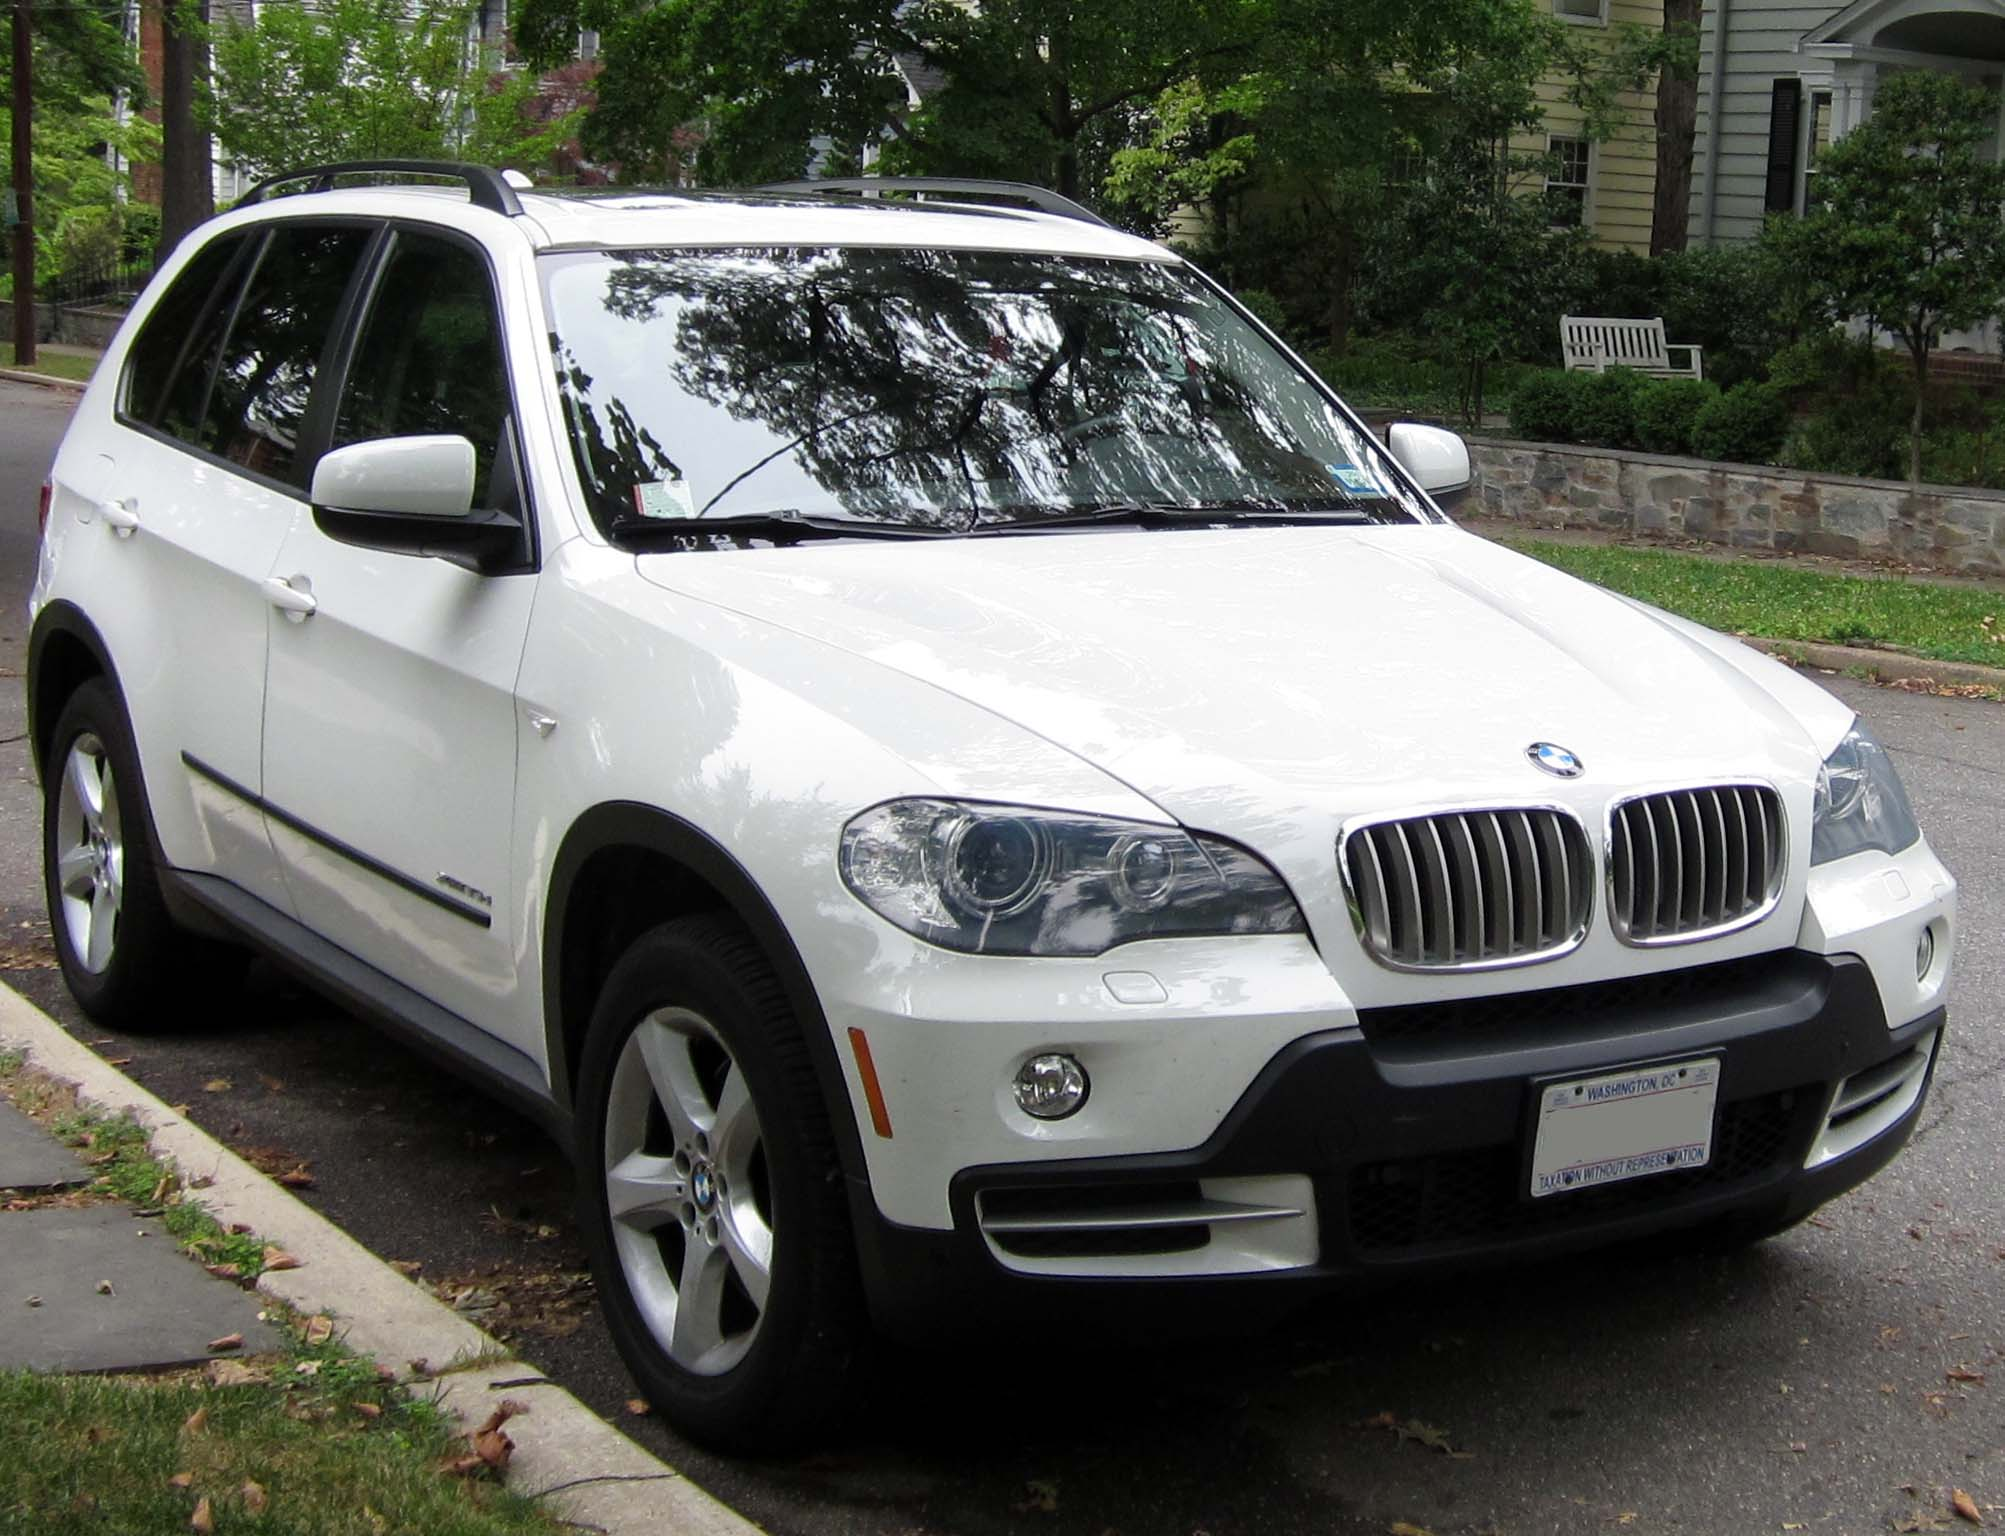 bmw x5 xdrive 48i reviews bmw x5 xdrive 48i car reviews. Black Bedroom Furniture Sets. Home Design Ideas